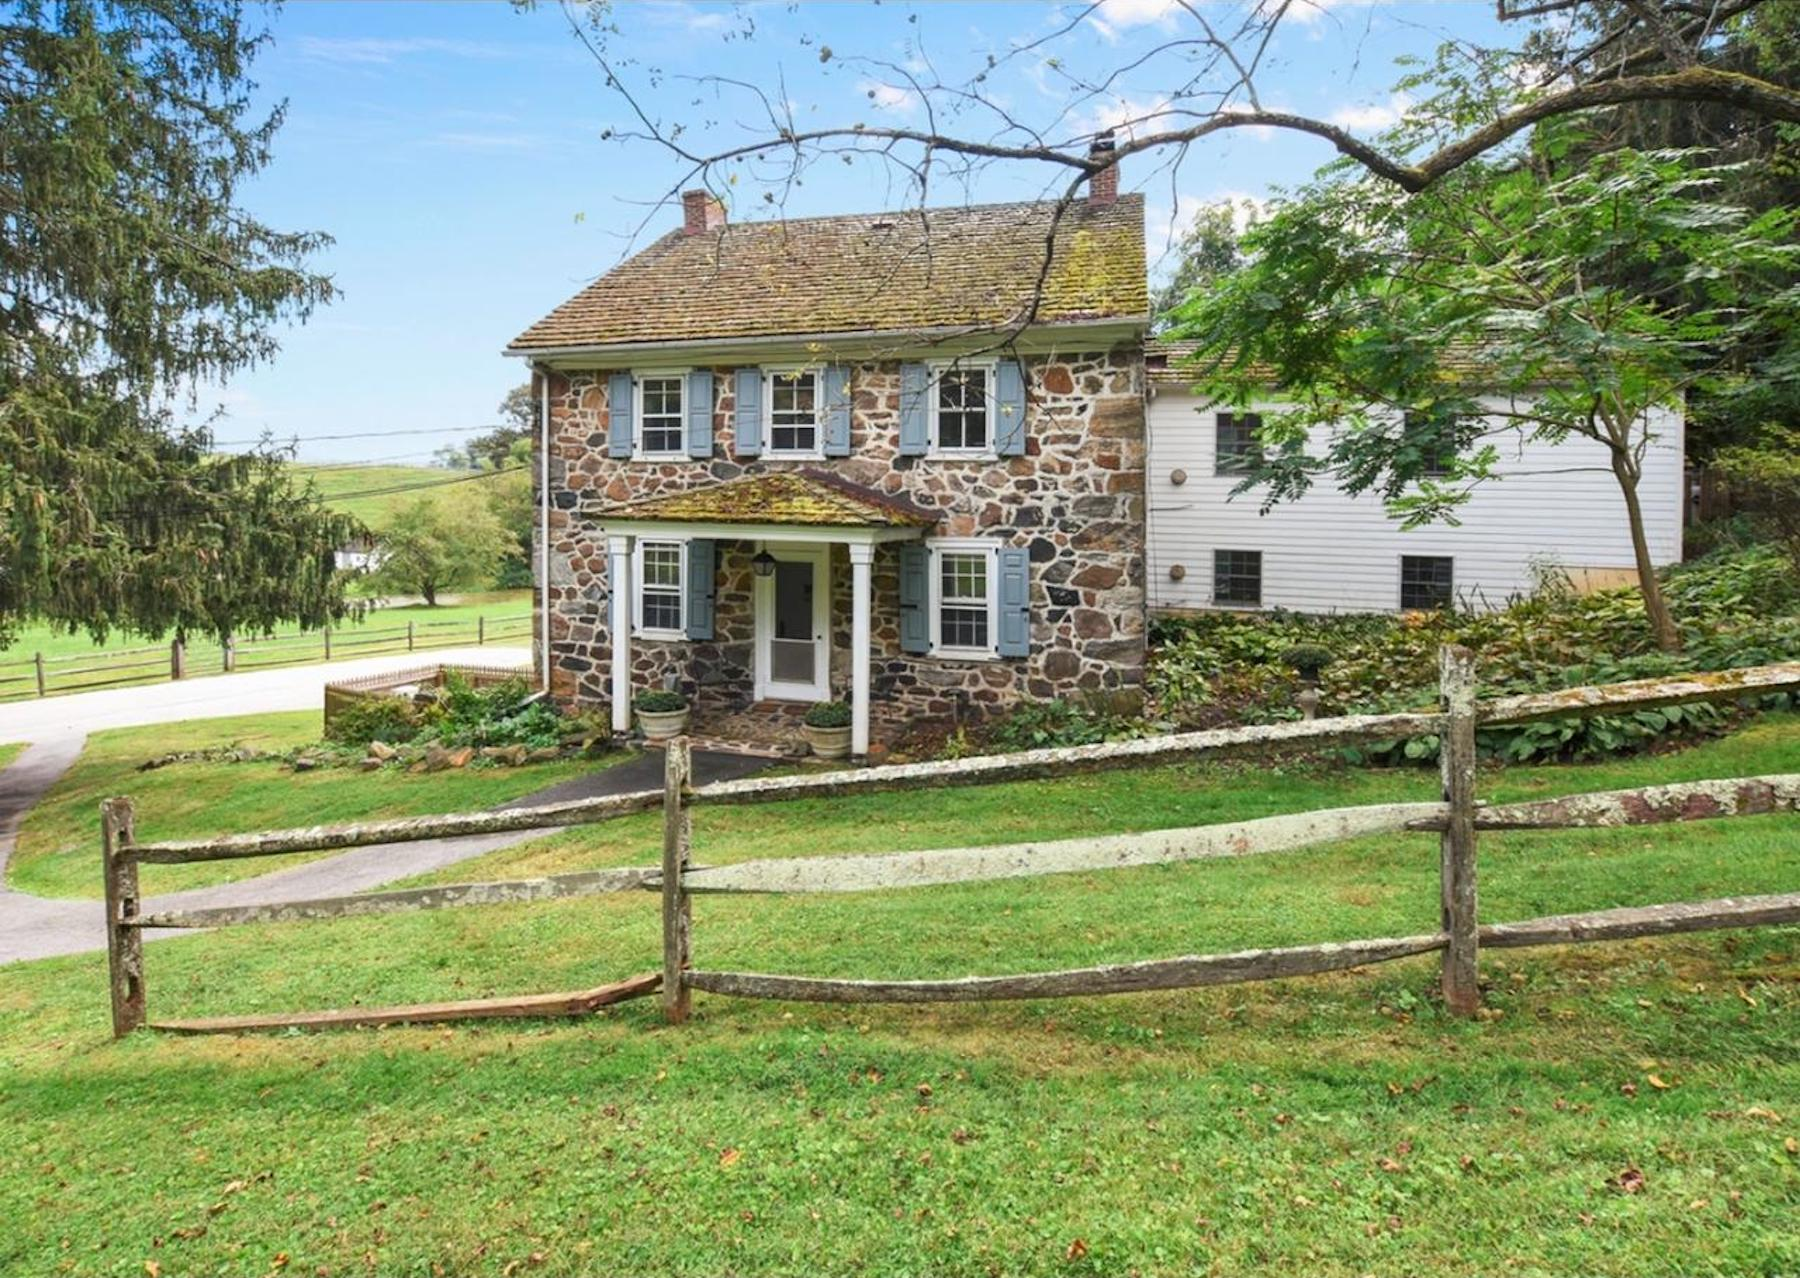 5 really old stone homes for sale in pennsylvania s countryside